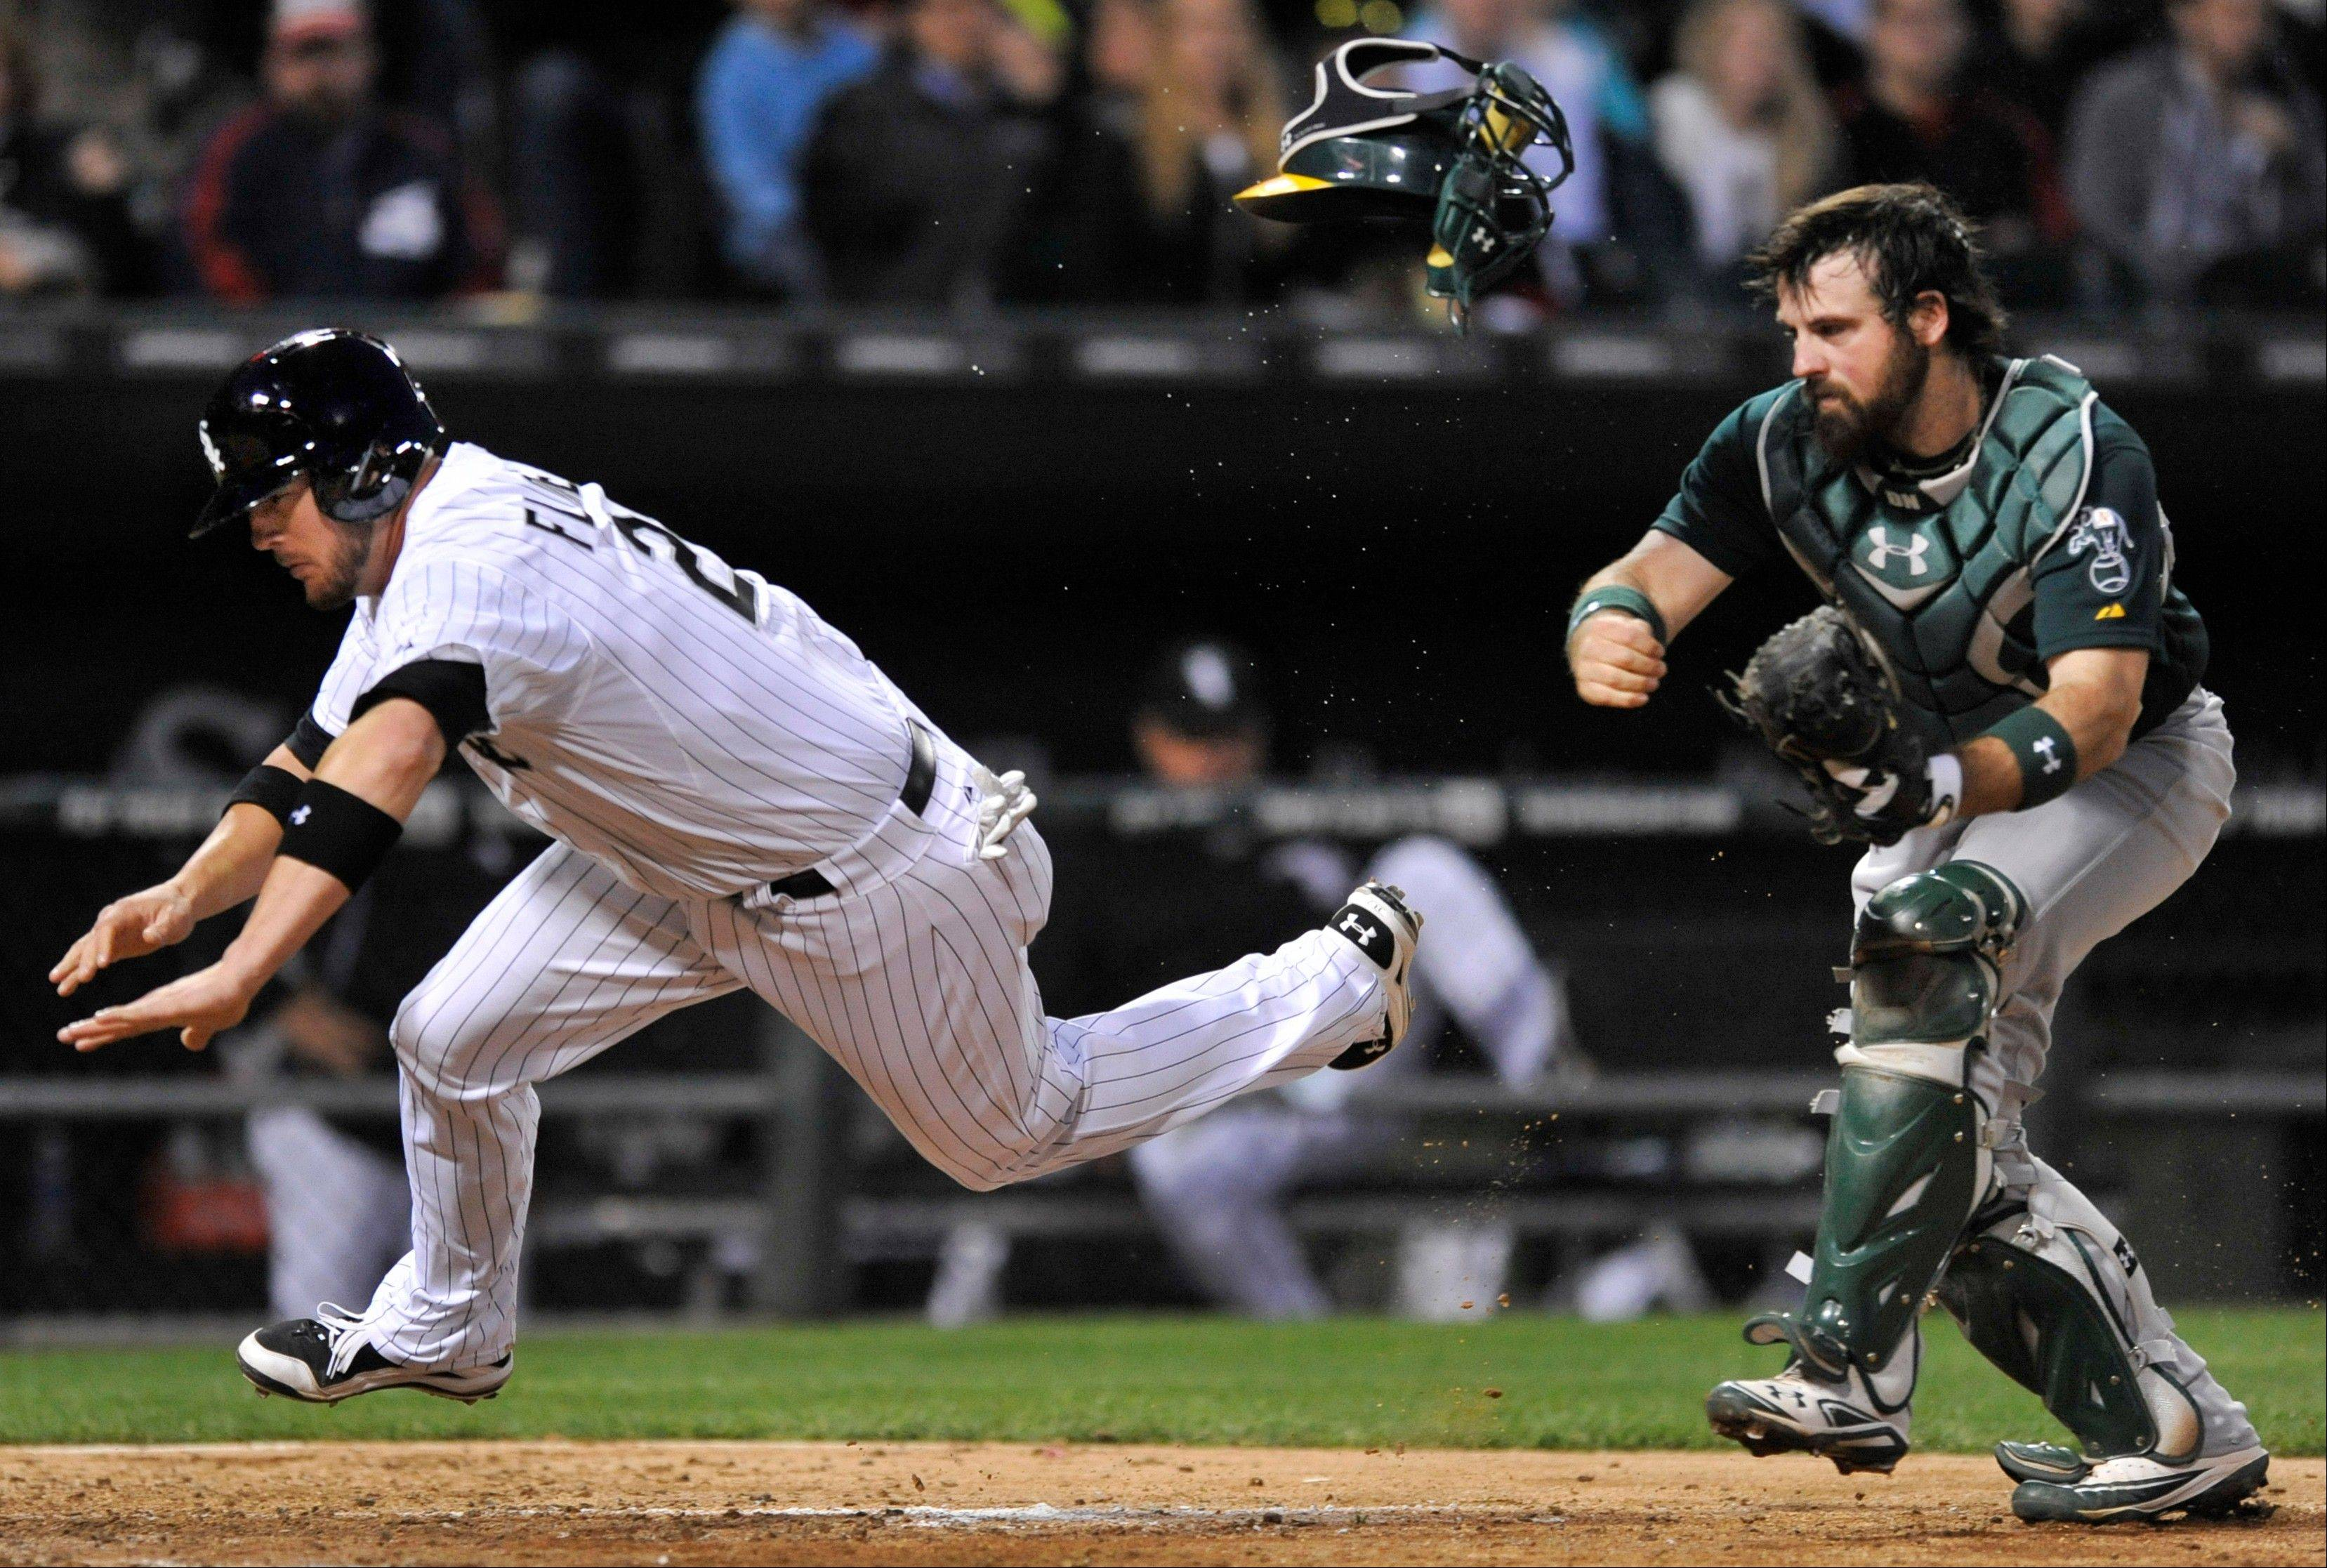 Chicago White Sox's Tyler Flowers left, is tagged out at home plate by Oakland Athletics catcher Derek Norris during the fifth inning of a baseball game in Chicago, Thursday, June 6, 2013.